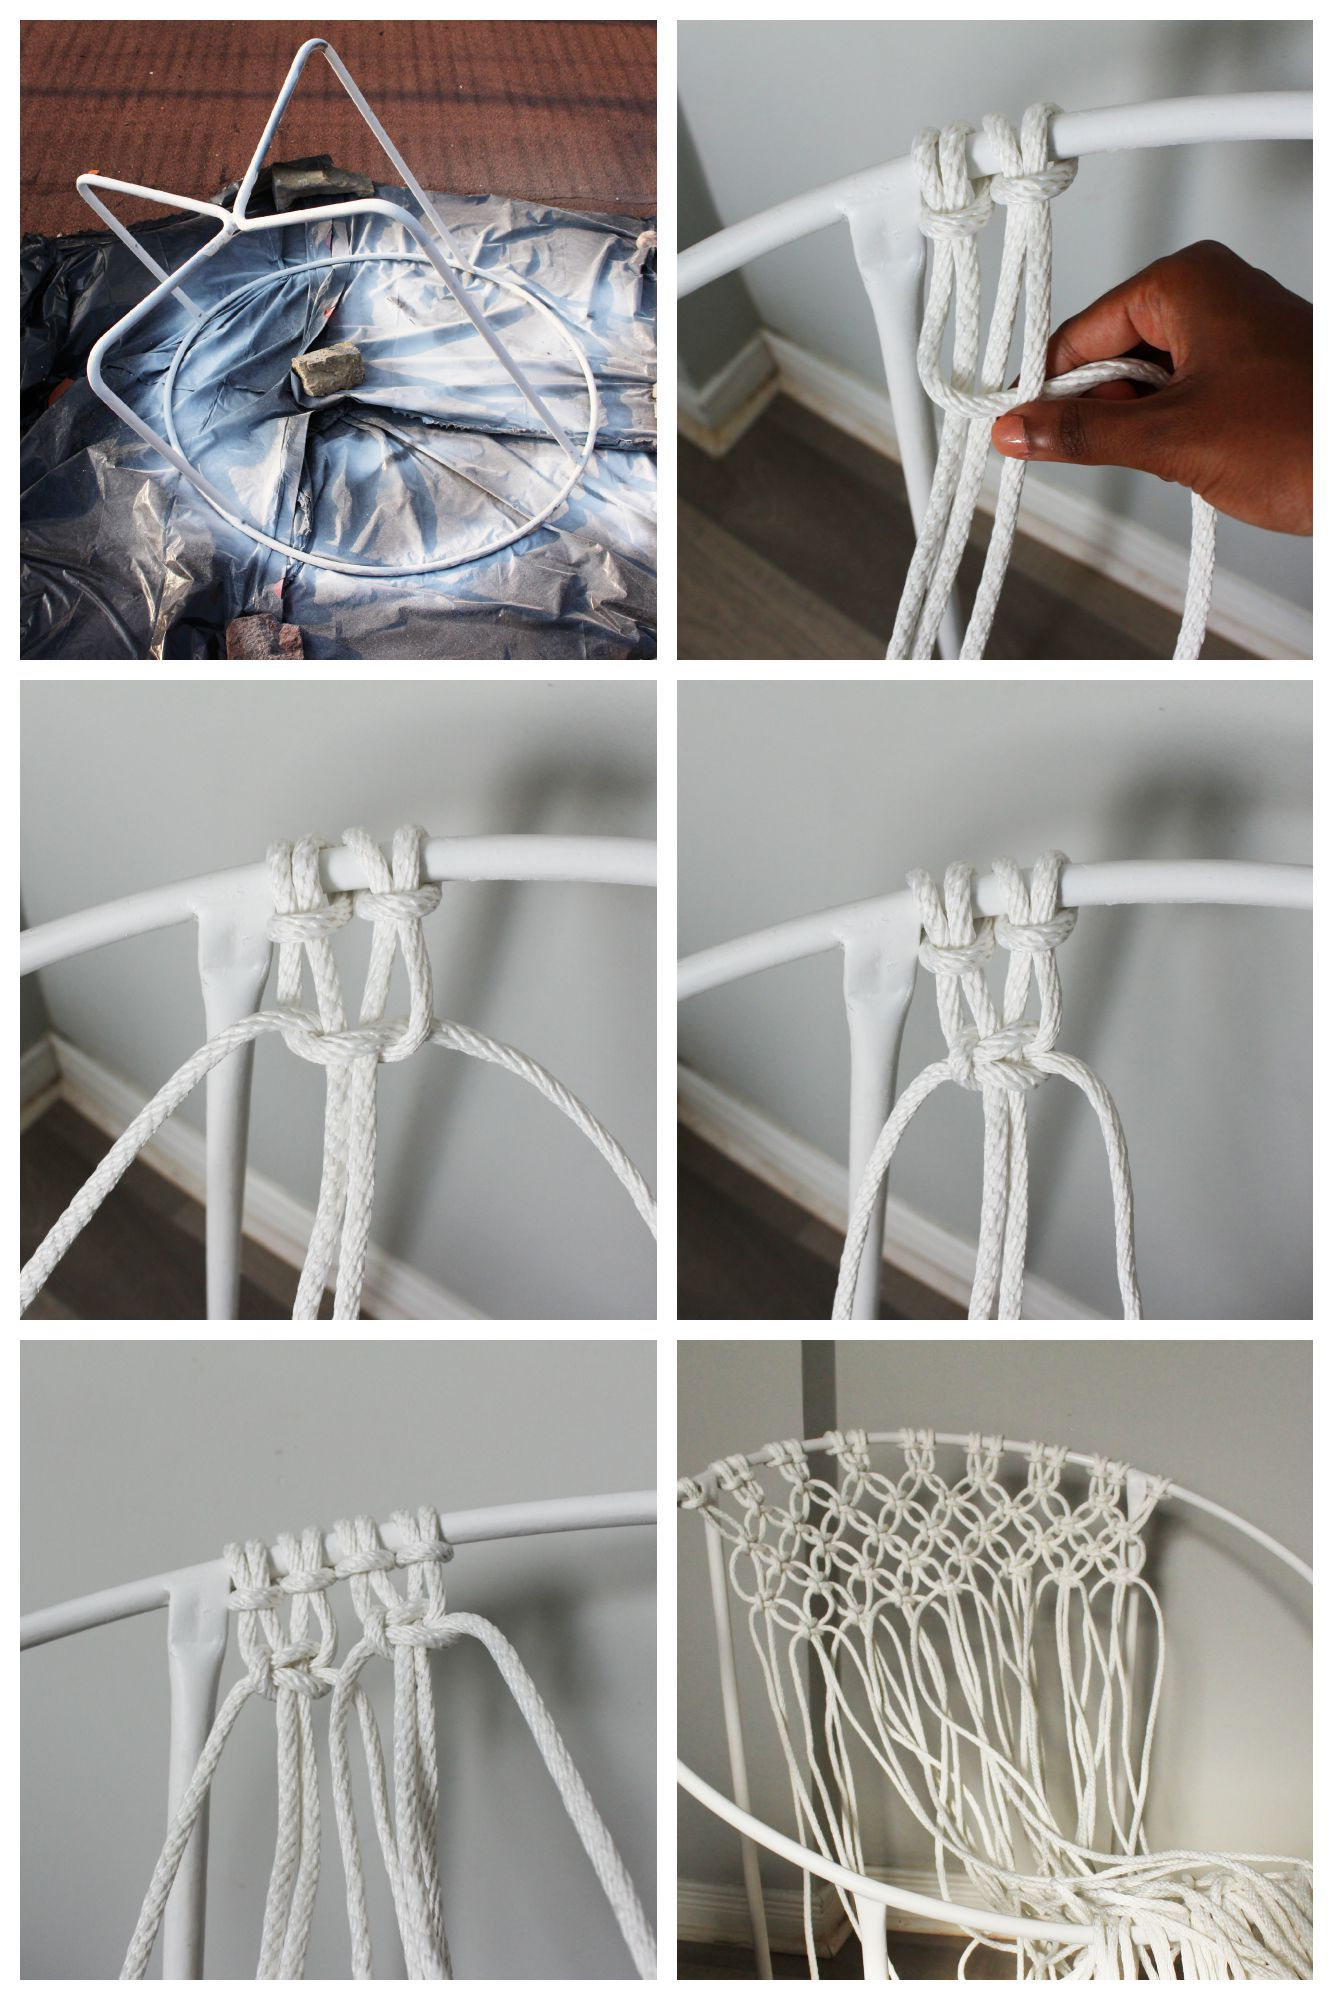 Diy Macrame Hammock Chair With Images Macrame Hammock Chair